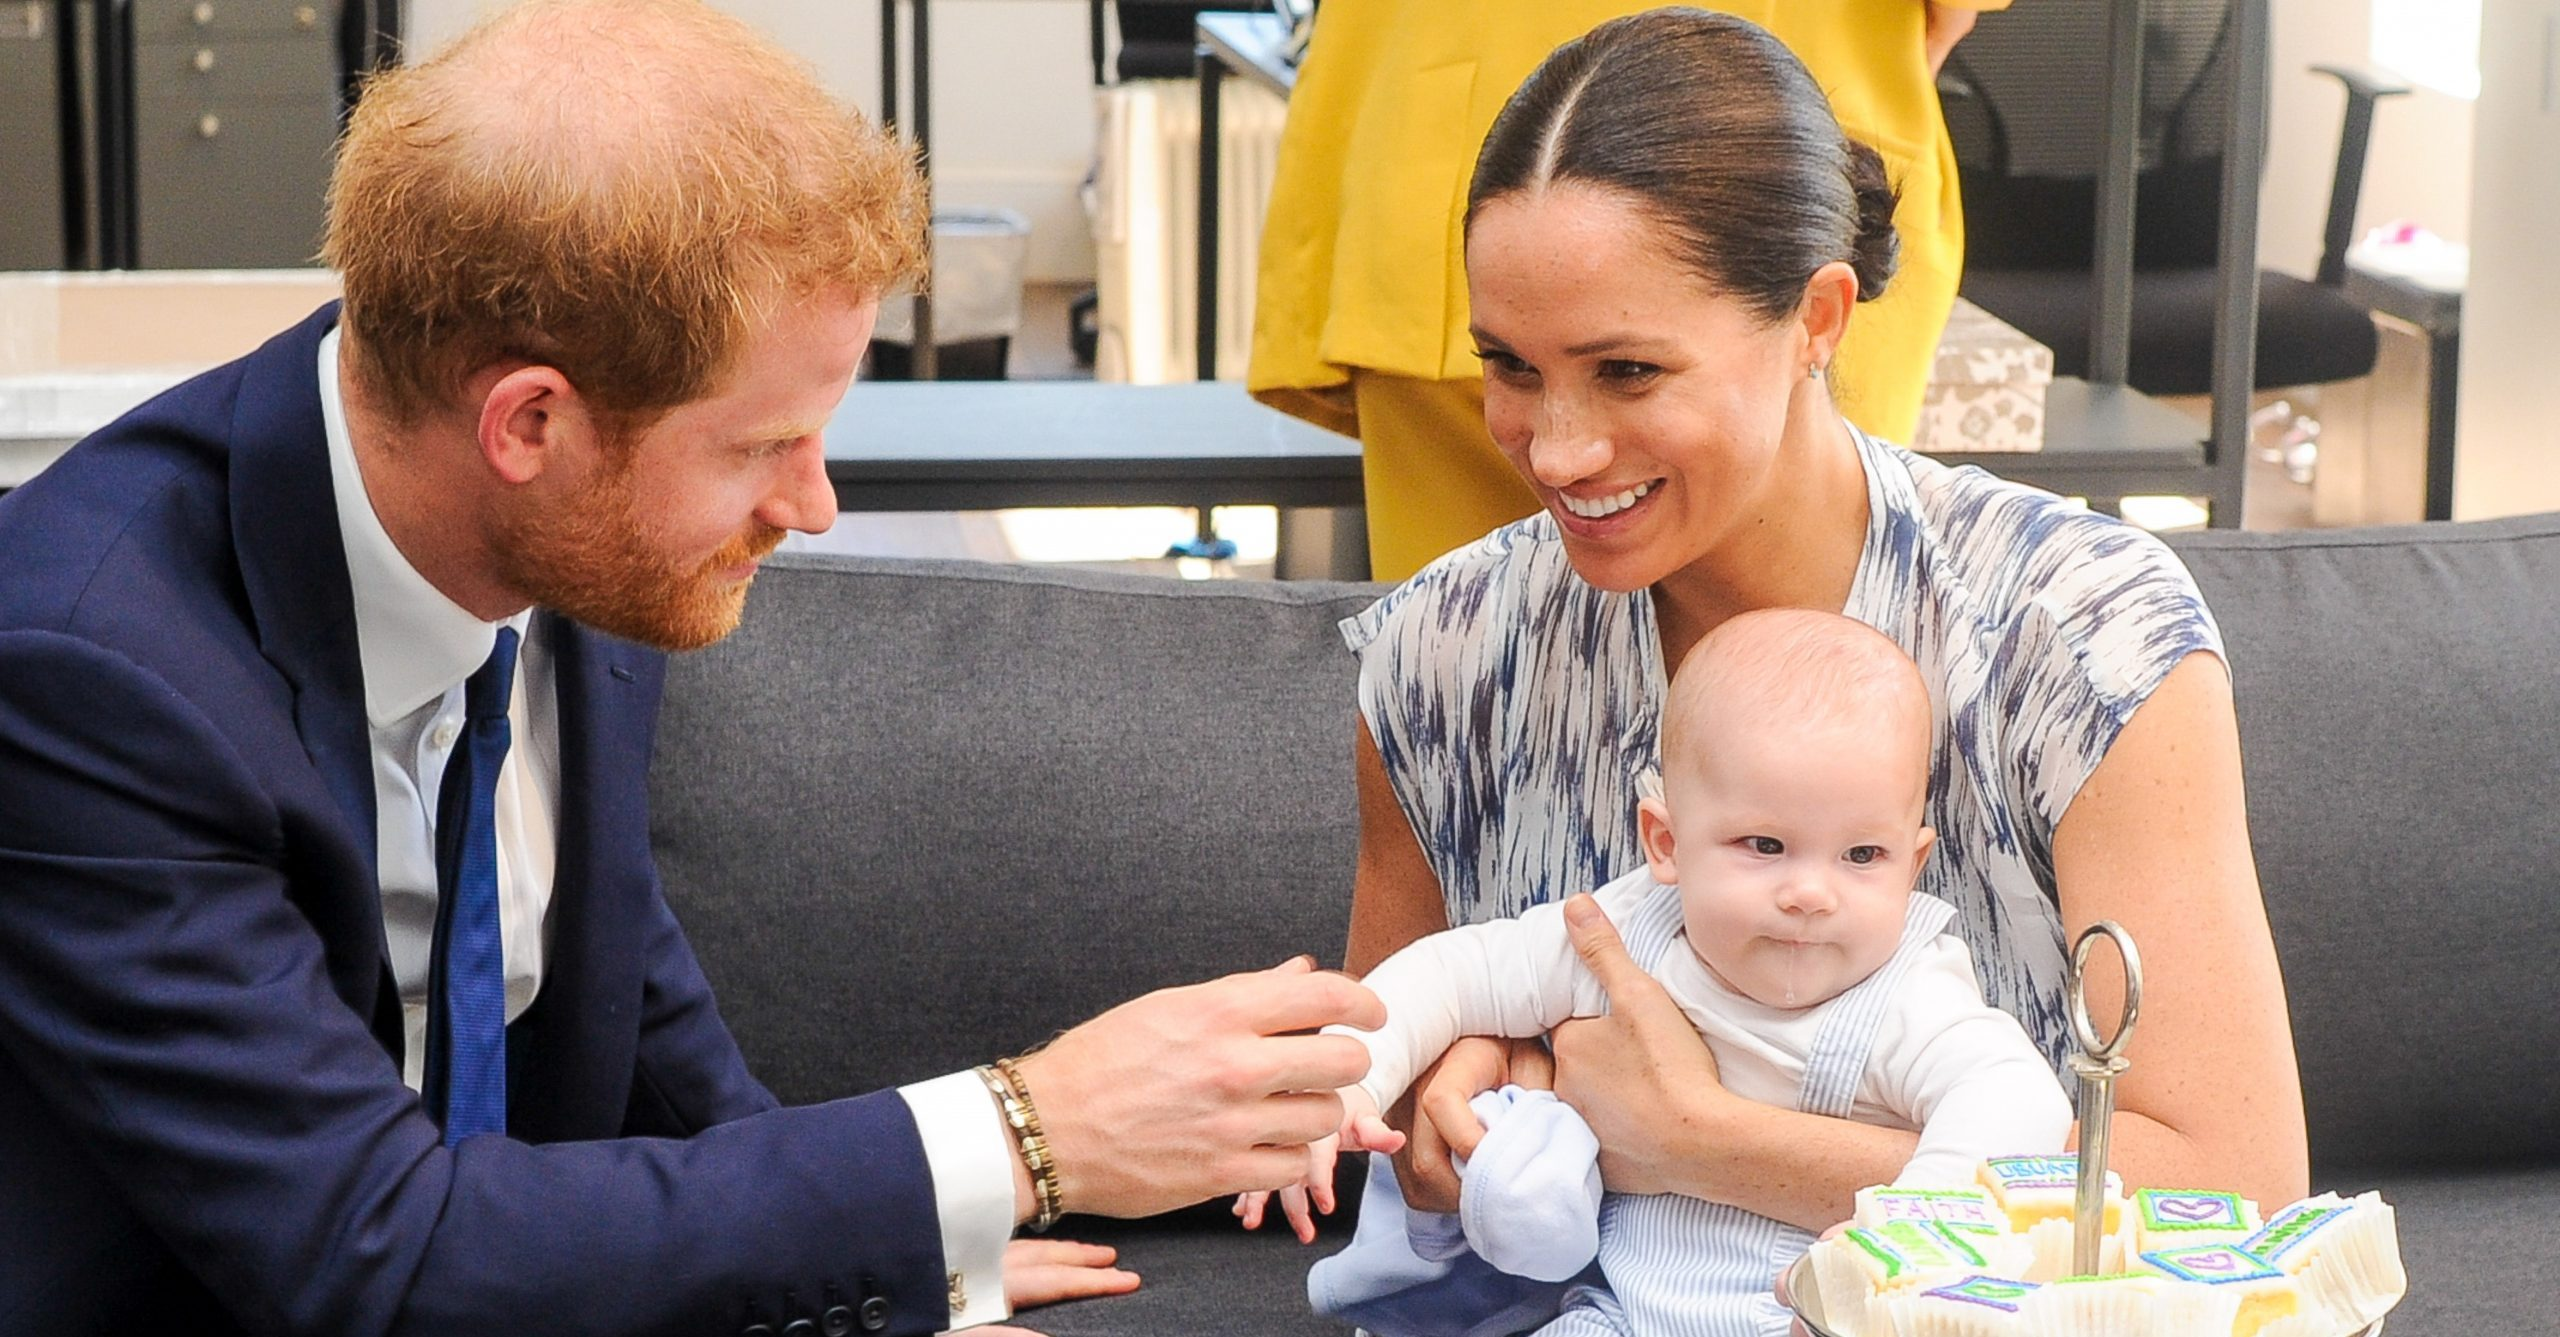 Prince Harry reveals glimpse into lockdown with Meghan and son Archie in video call